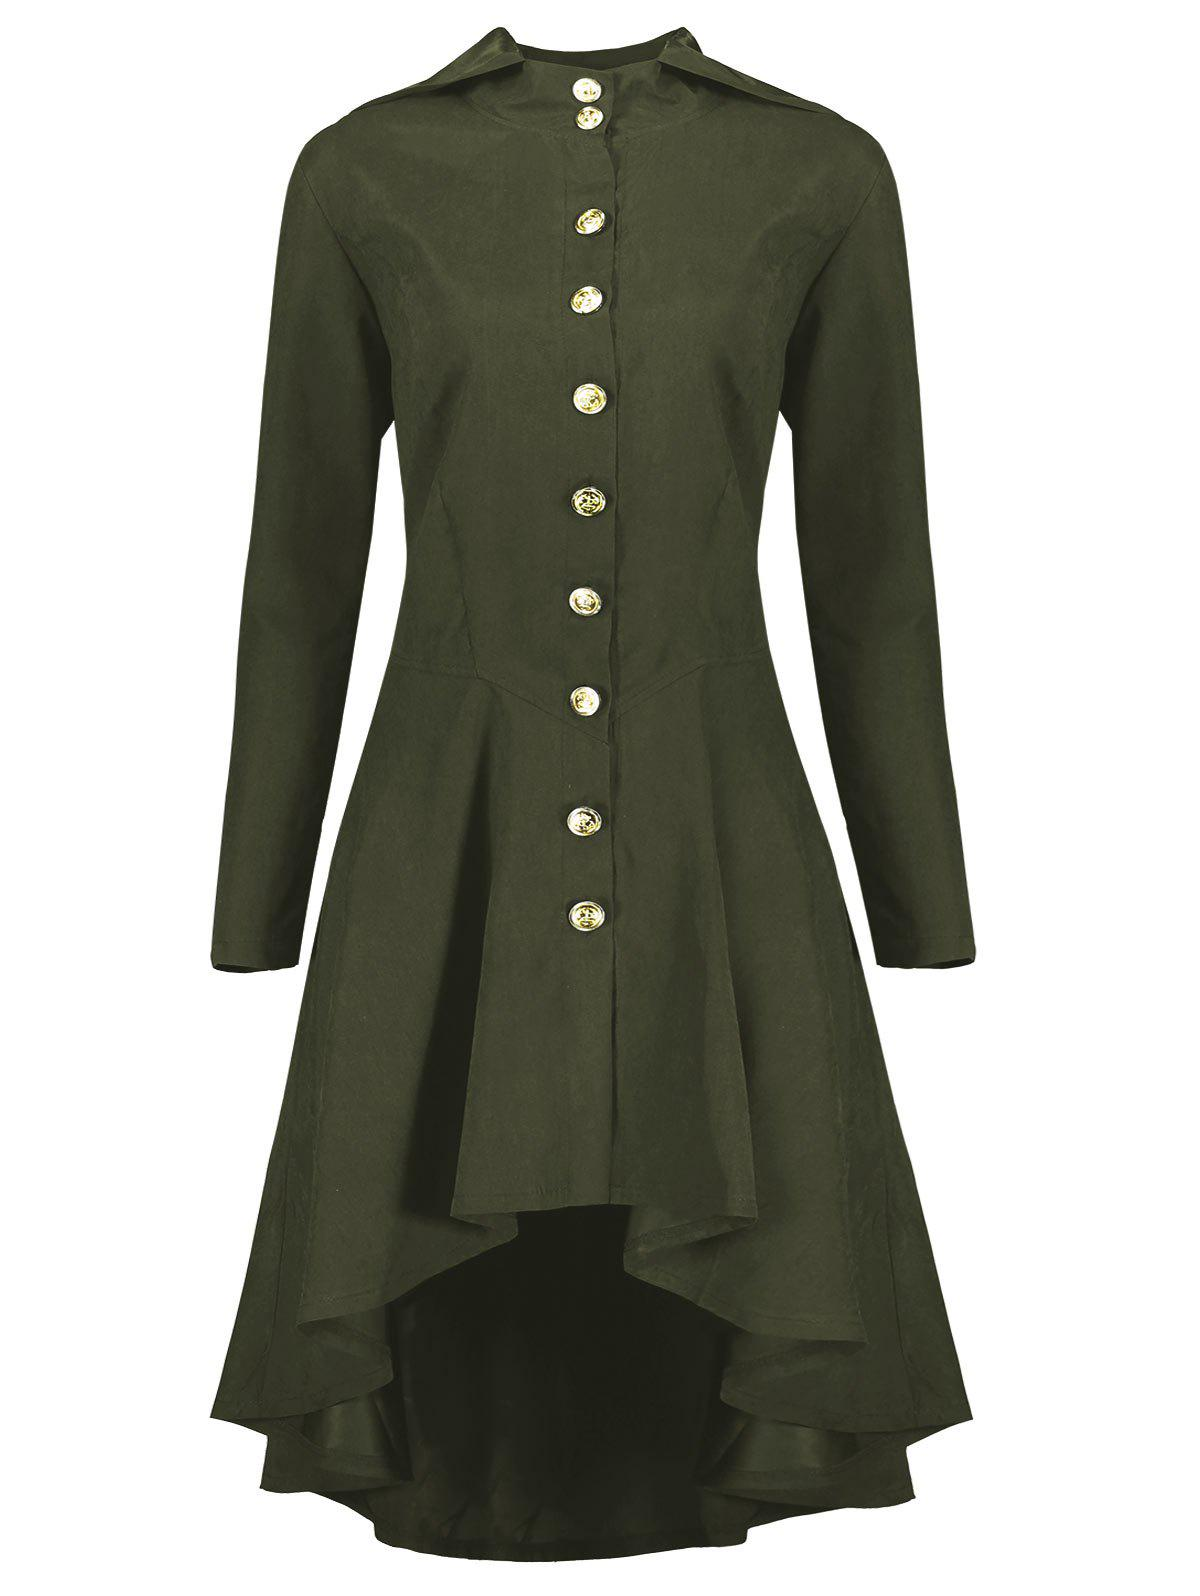 Hooded Plus Size High Low Lace Up CoatWOMEN<br><br>Size: 3XL; Color: ARMY GREEN; Clothes Type: Others; Material: Polyester,Spandex; Type: Slim; Shirt Length: Long; Sleeve Length: Full; Collar: Hooded; Pattern Type: Solid; Style: Fashion; Season: Fall,Winter; Weight: 0.5200kg; Package Contents: 1 x Coat;